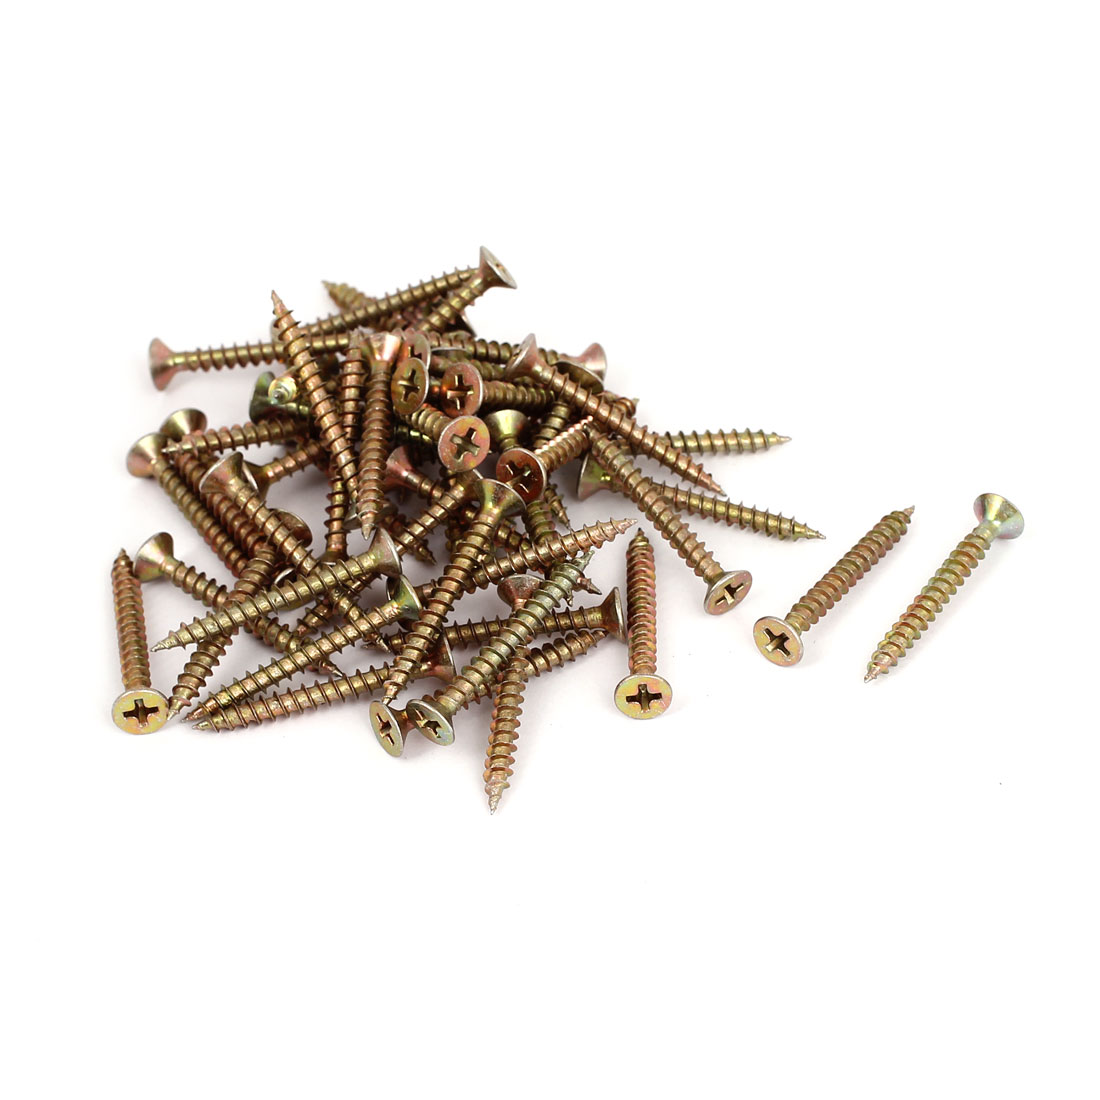 4mmx35mm Phillips Flat Head Sheet Metal Self Tapping Drilling Screws Fasteners 50pcs